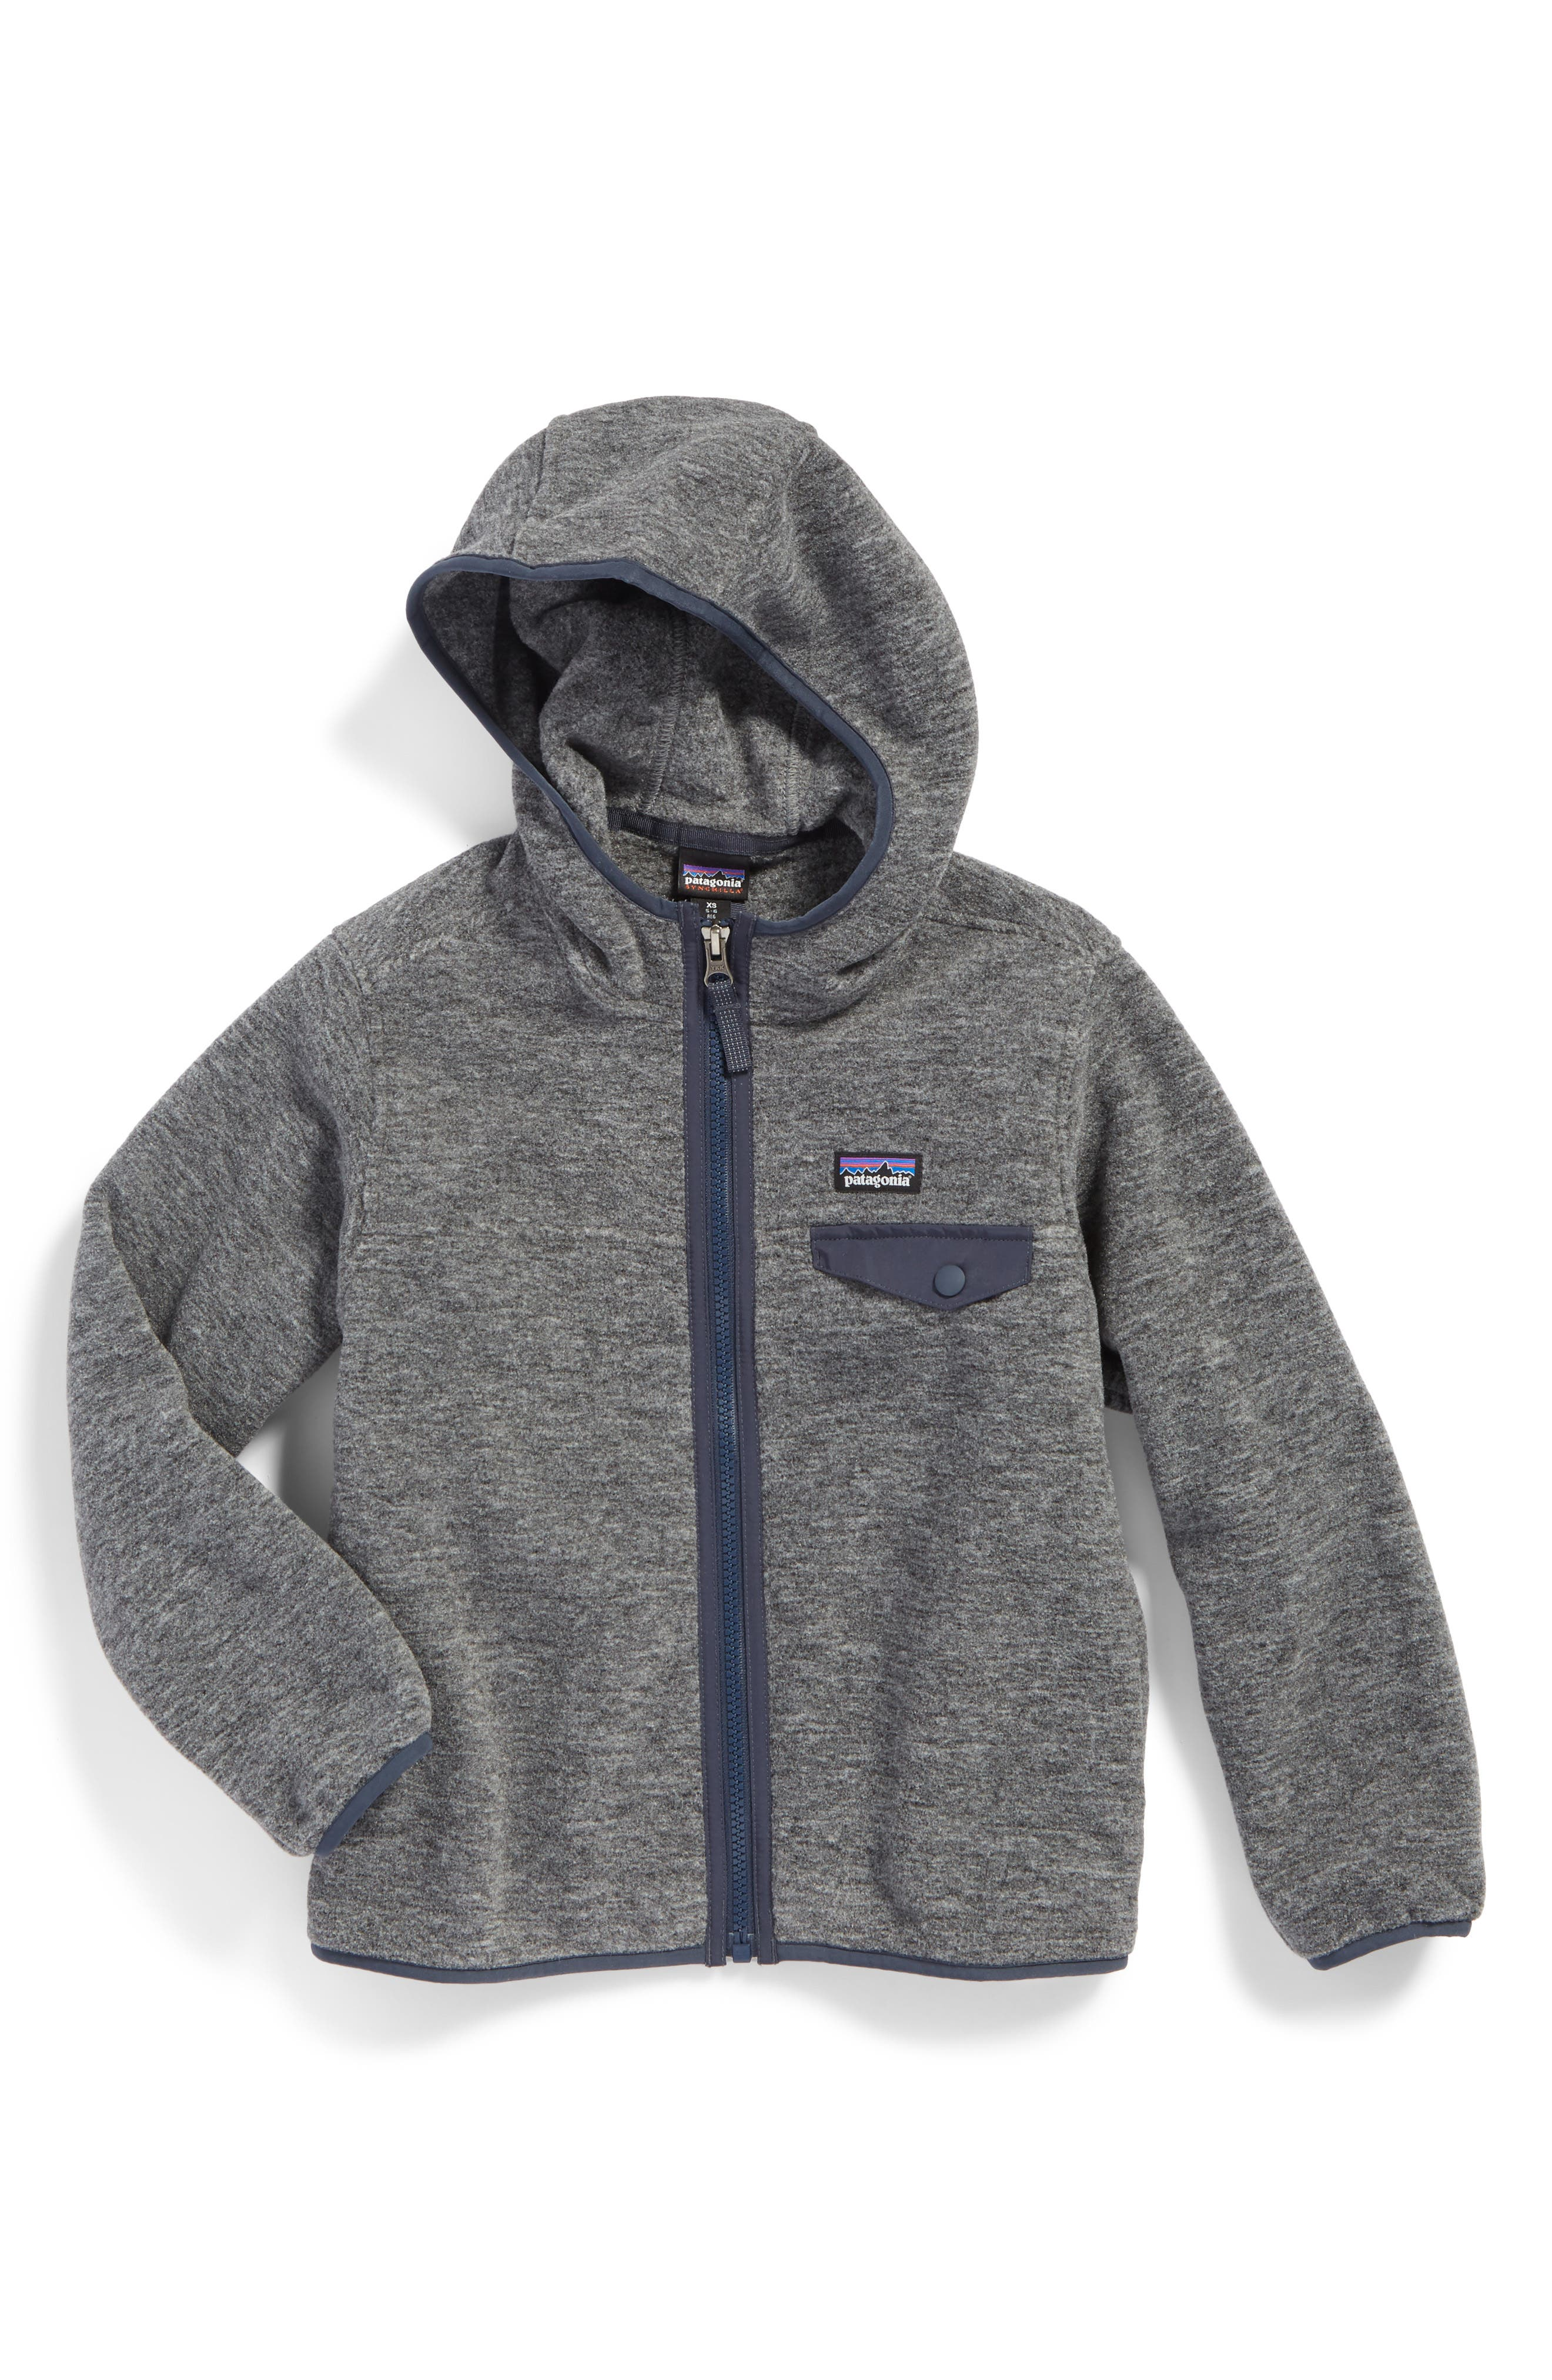 Synchilla<sup>®</sup> Snap-T<sup>®</sup> Fleece Jacket,                         Main,                         color,